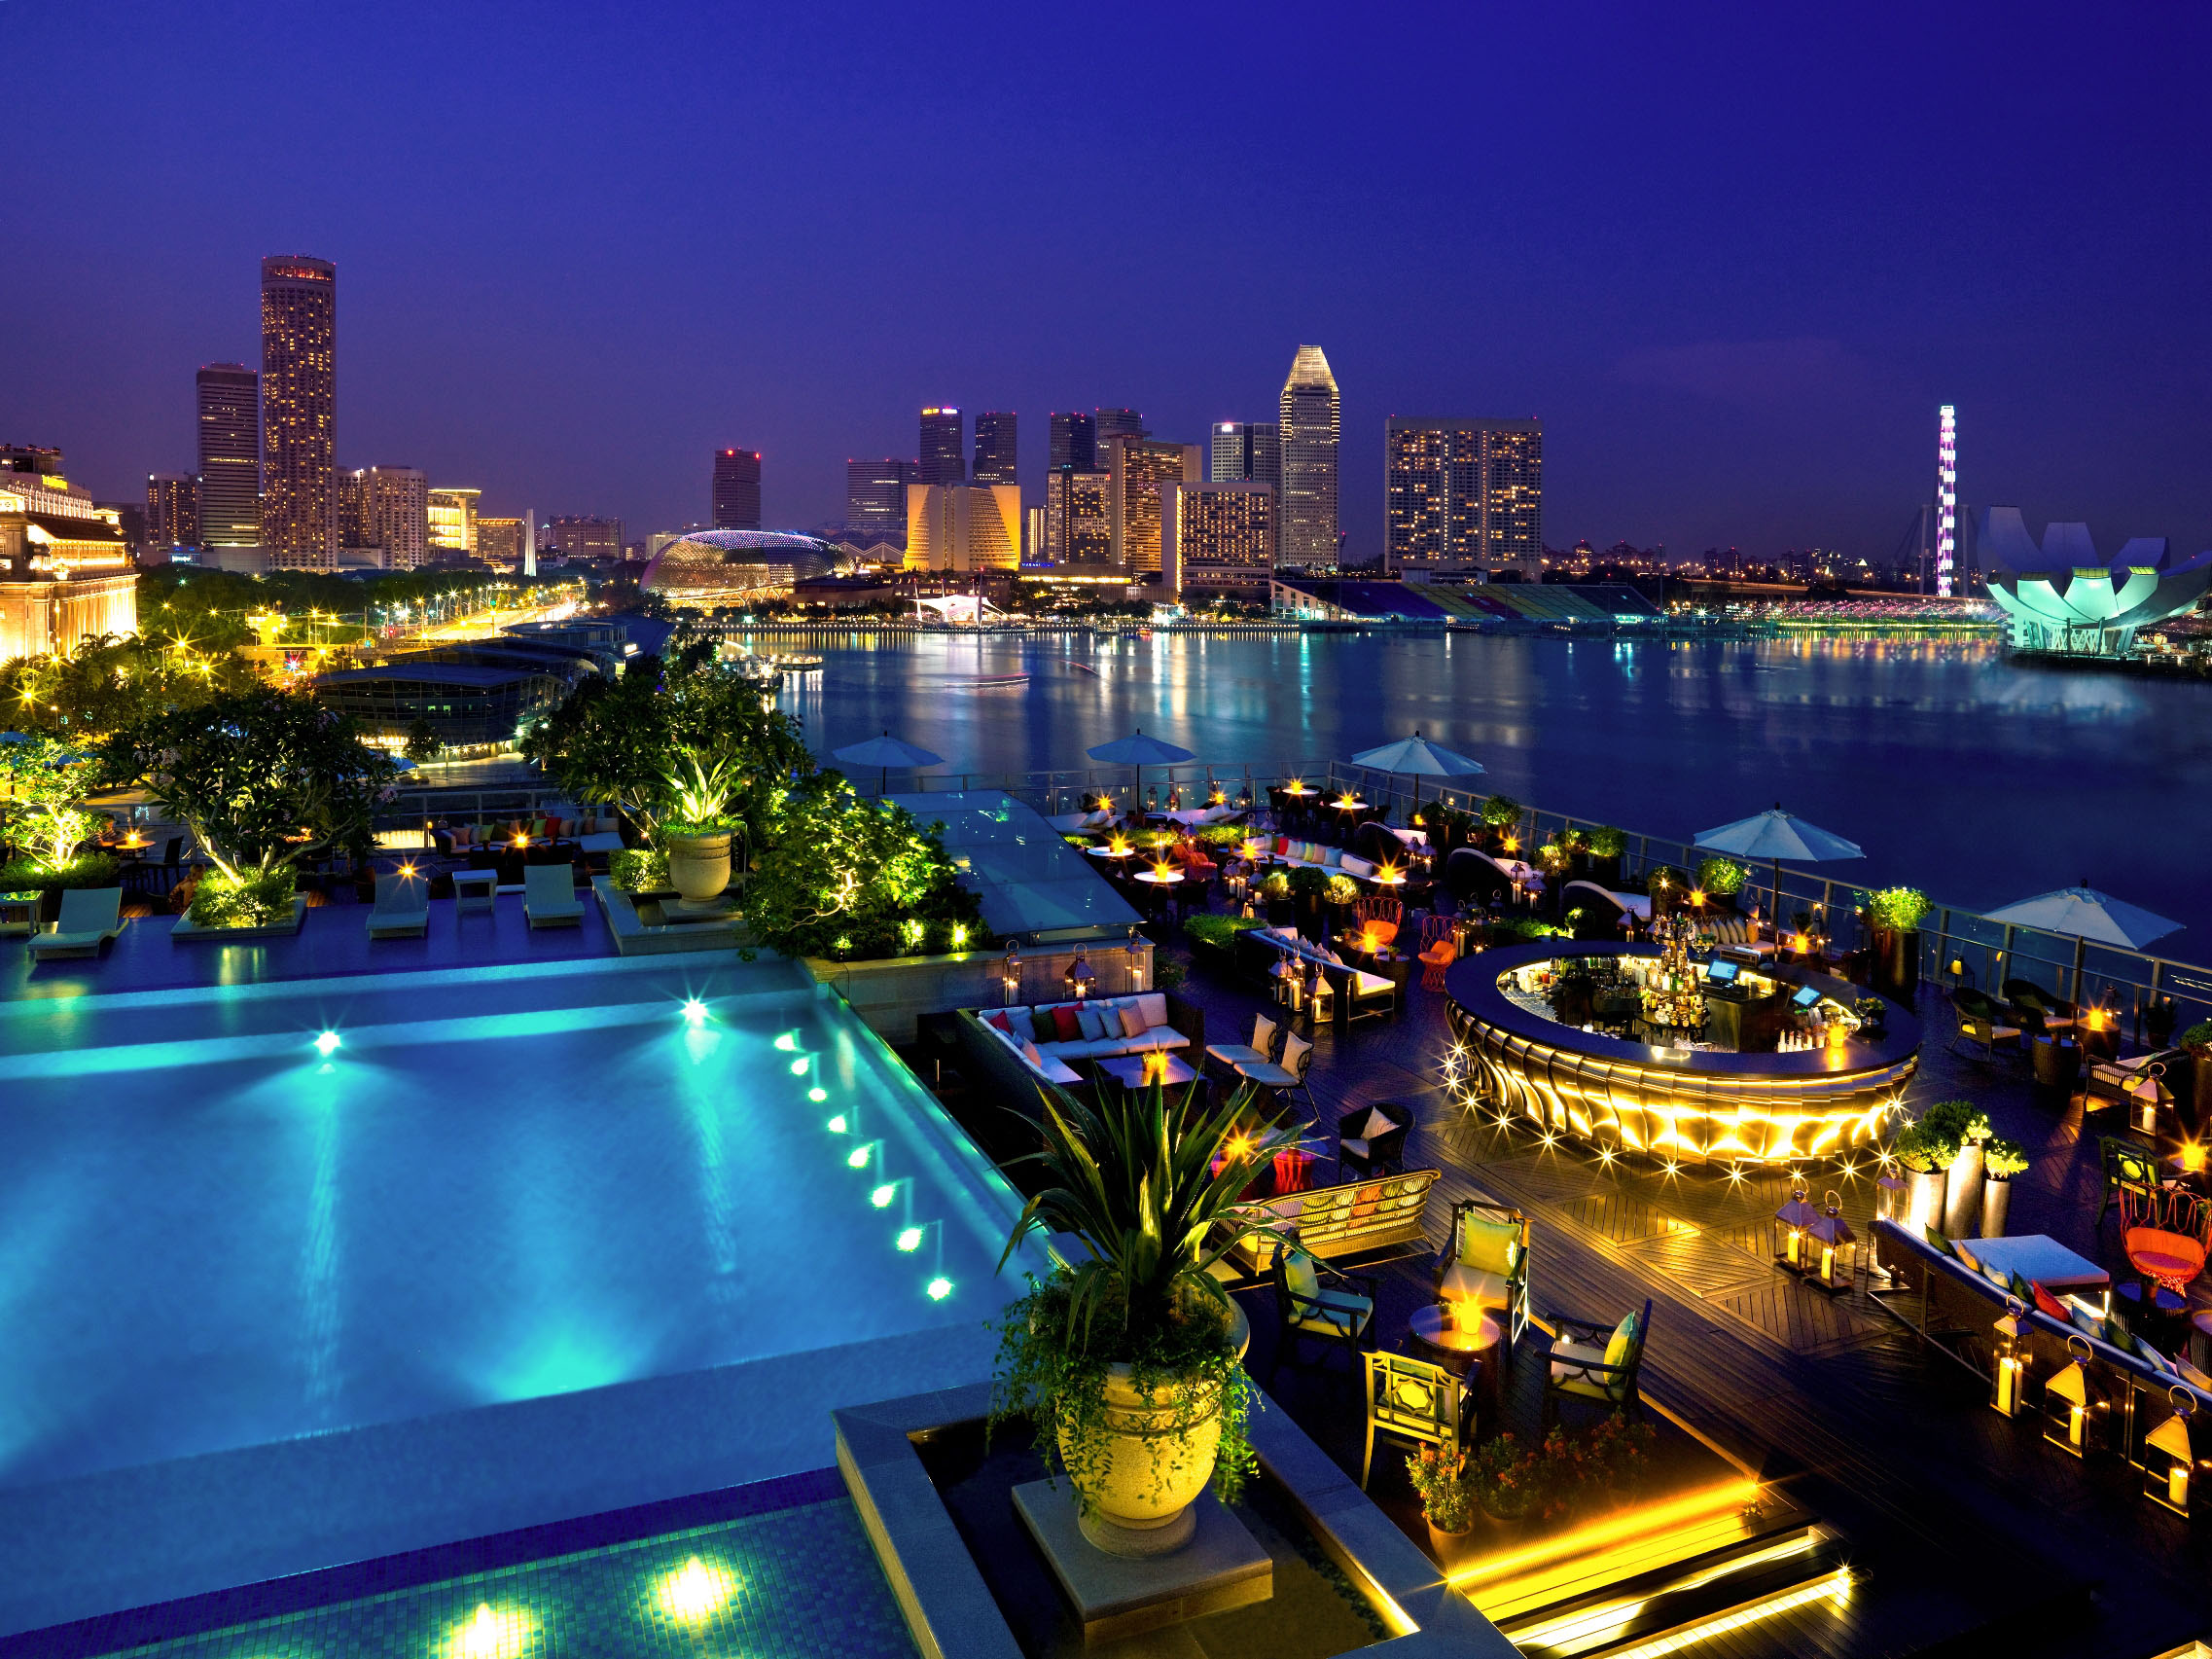 rooftop-Lantern-bar-lounge-event-Space-pool-party-Singapore